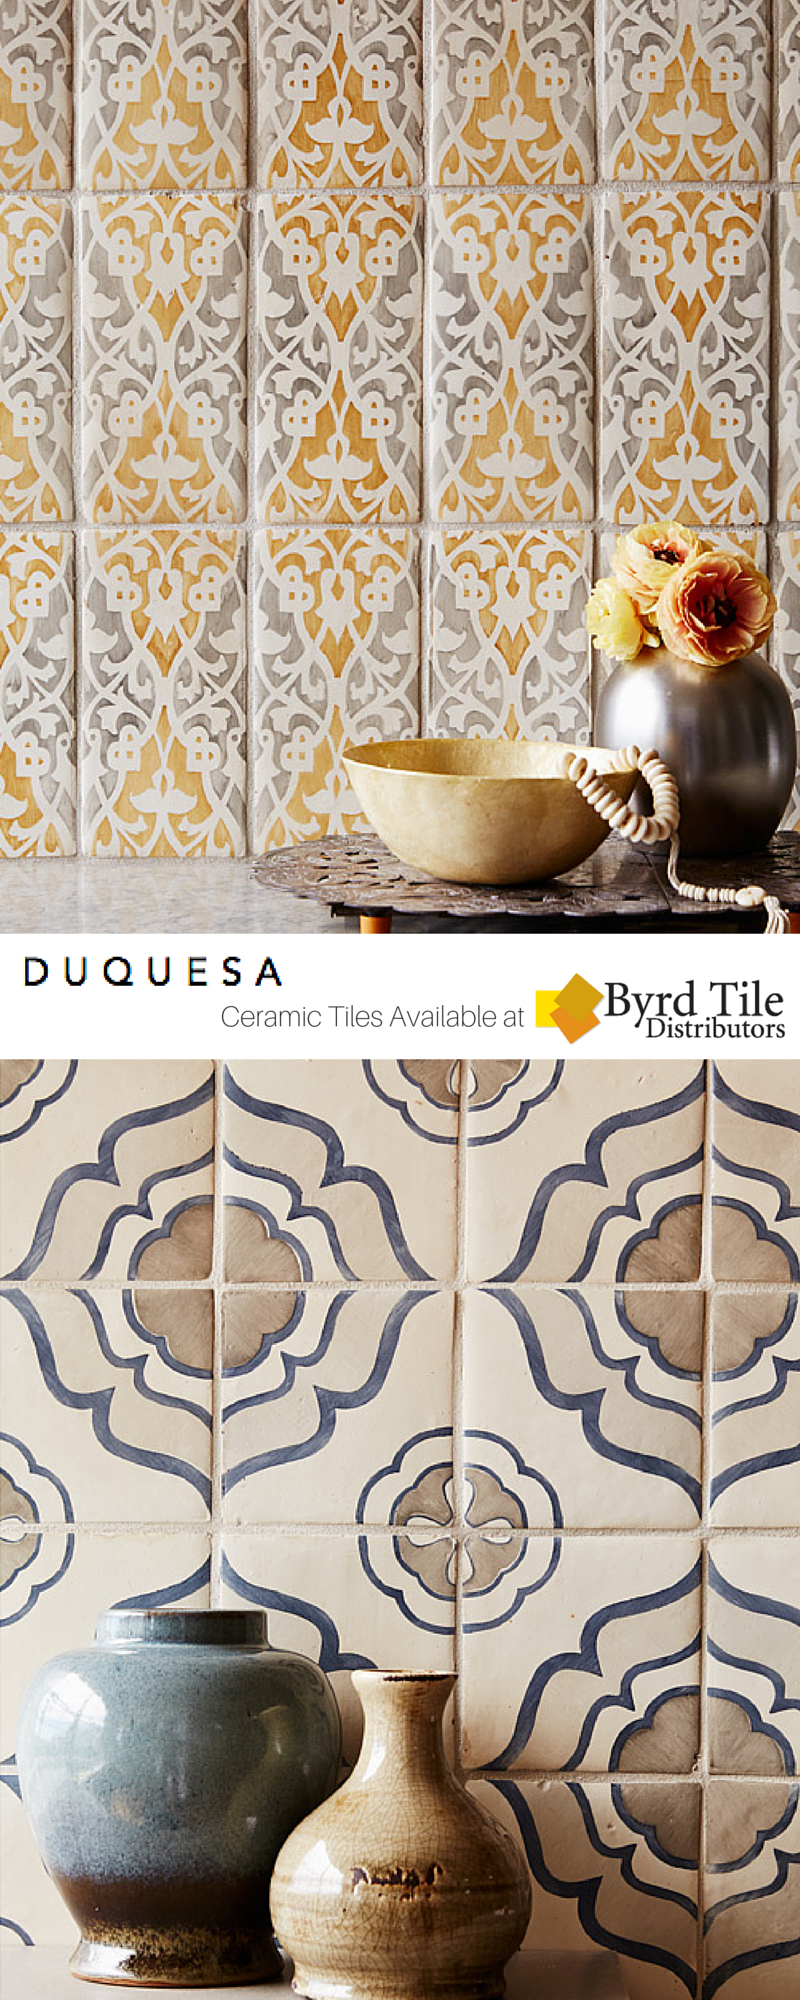 Byrd tile distributors in raleigh nc is proud to carry the byrd tile distributors in raleigh nc is proud to carry the stunningly gorgeous hand dailygadgetfo Images